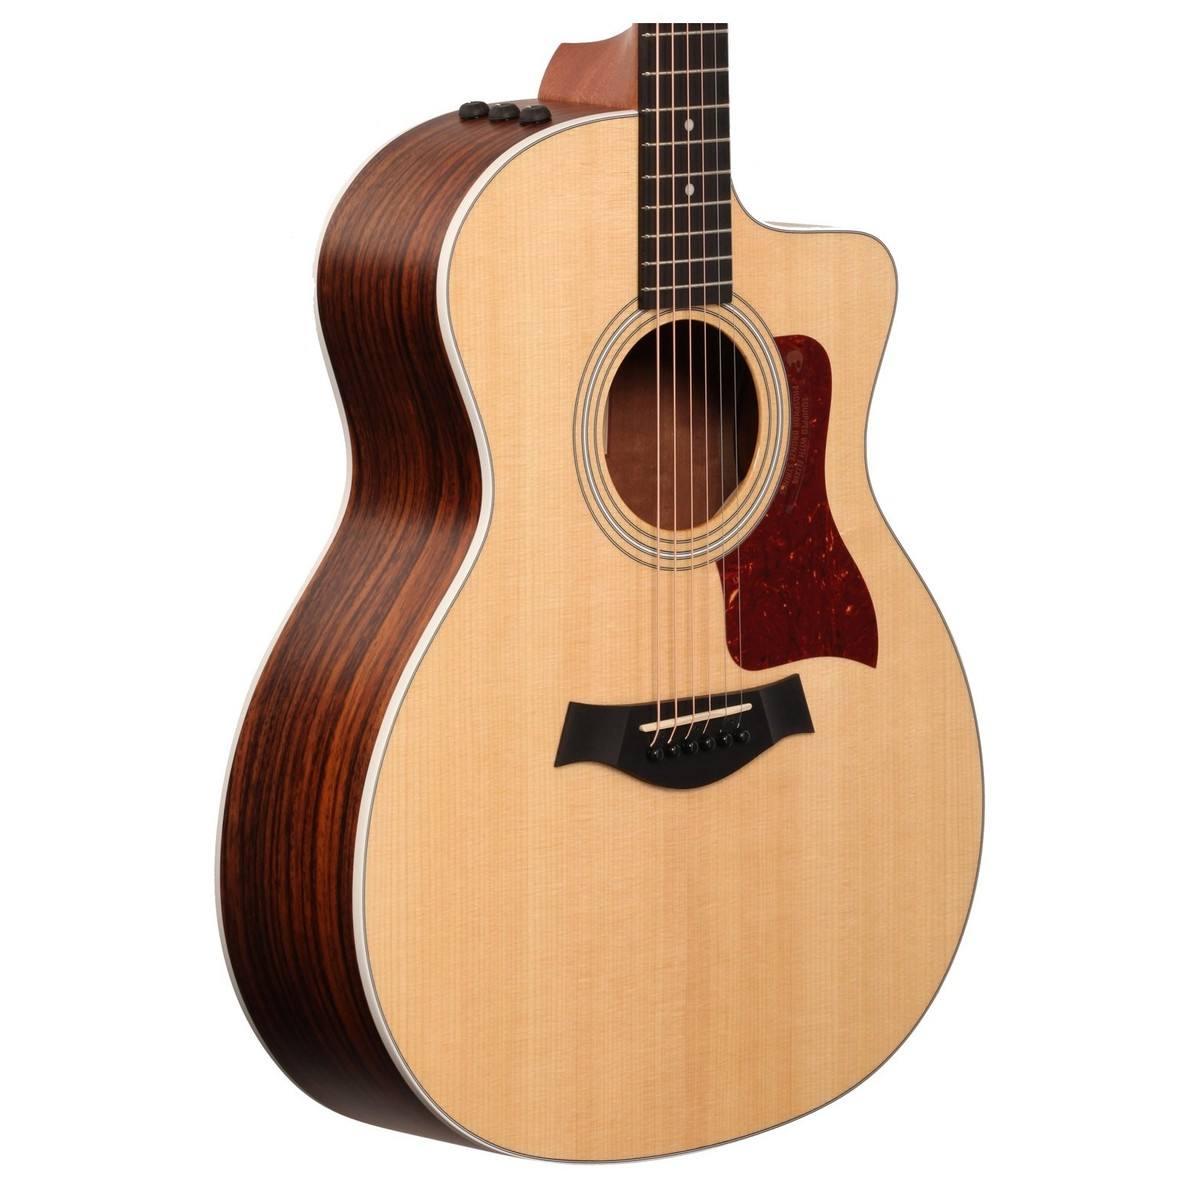 taylor 214ce grand auditorium electro acoustic guitar natural box opened at. Black Bedroom Furniture Sets. Home Design Ideas